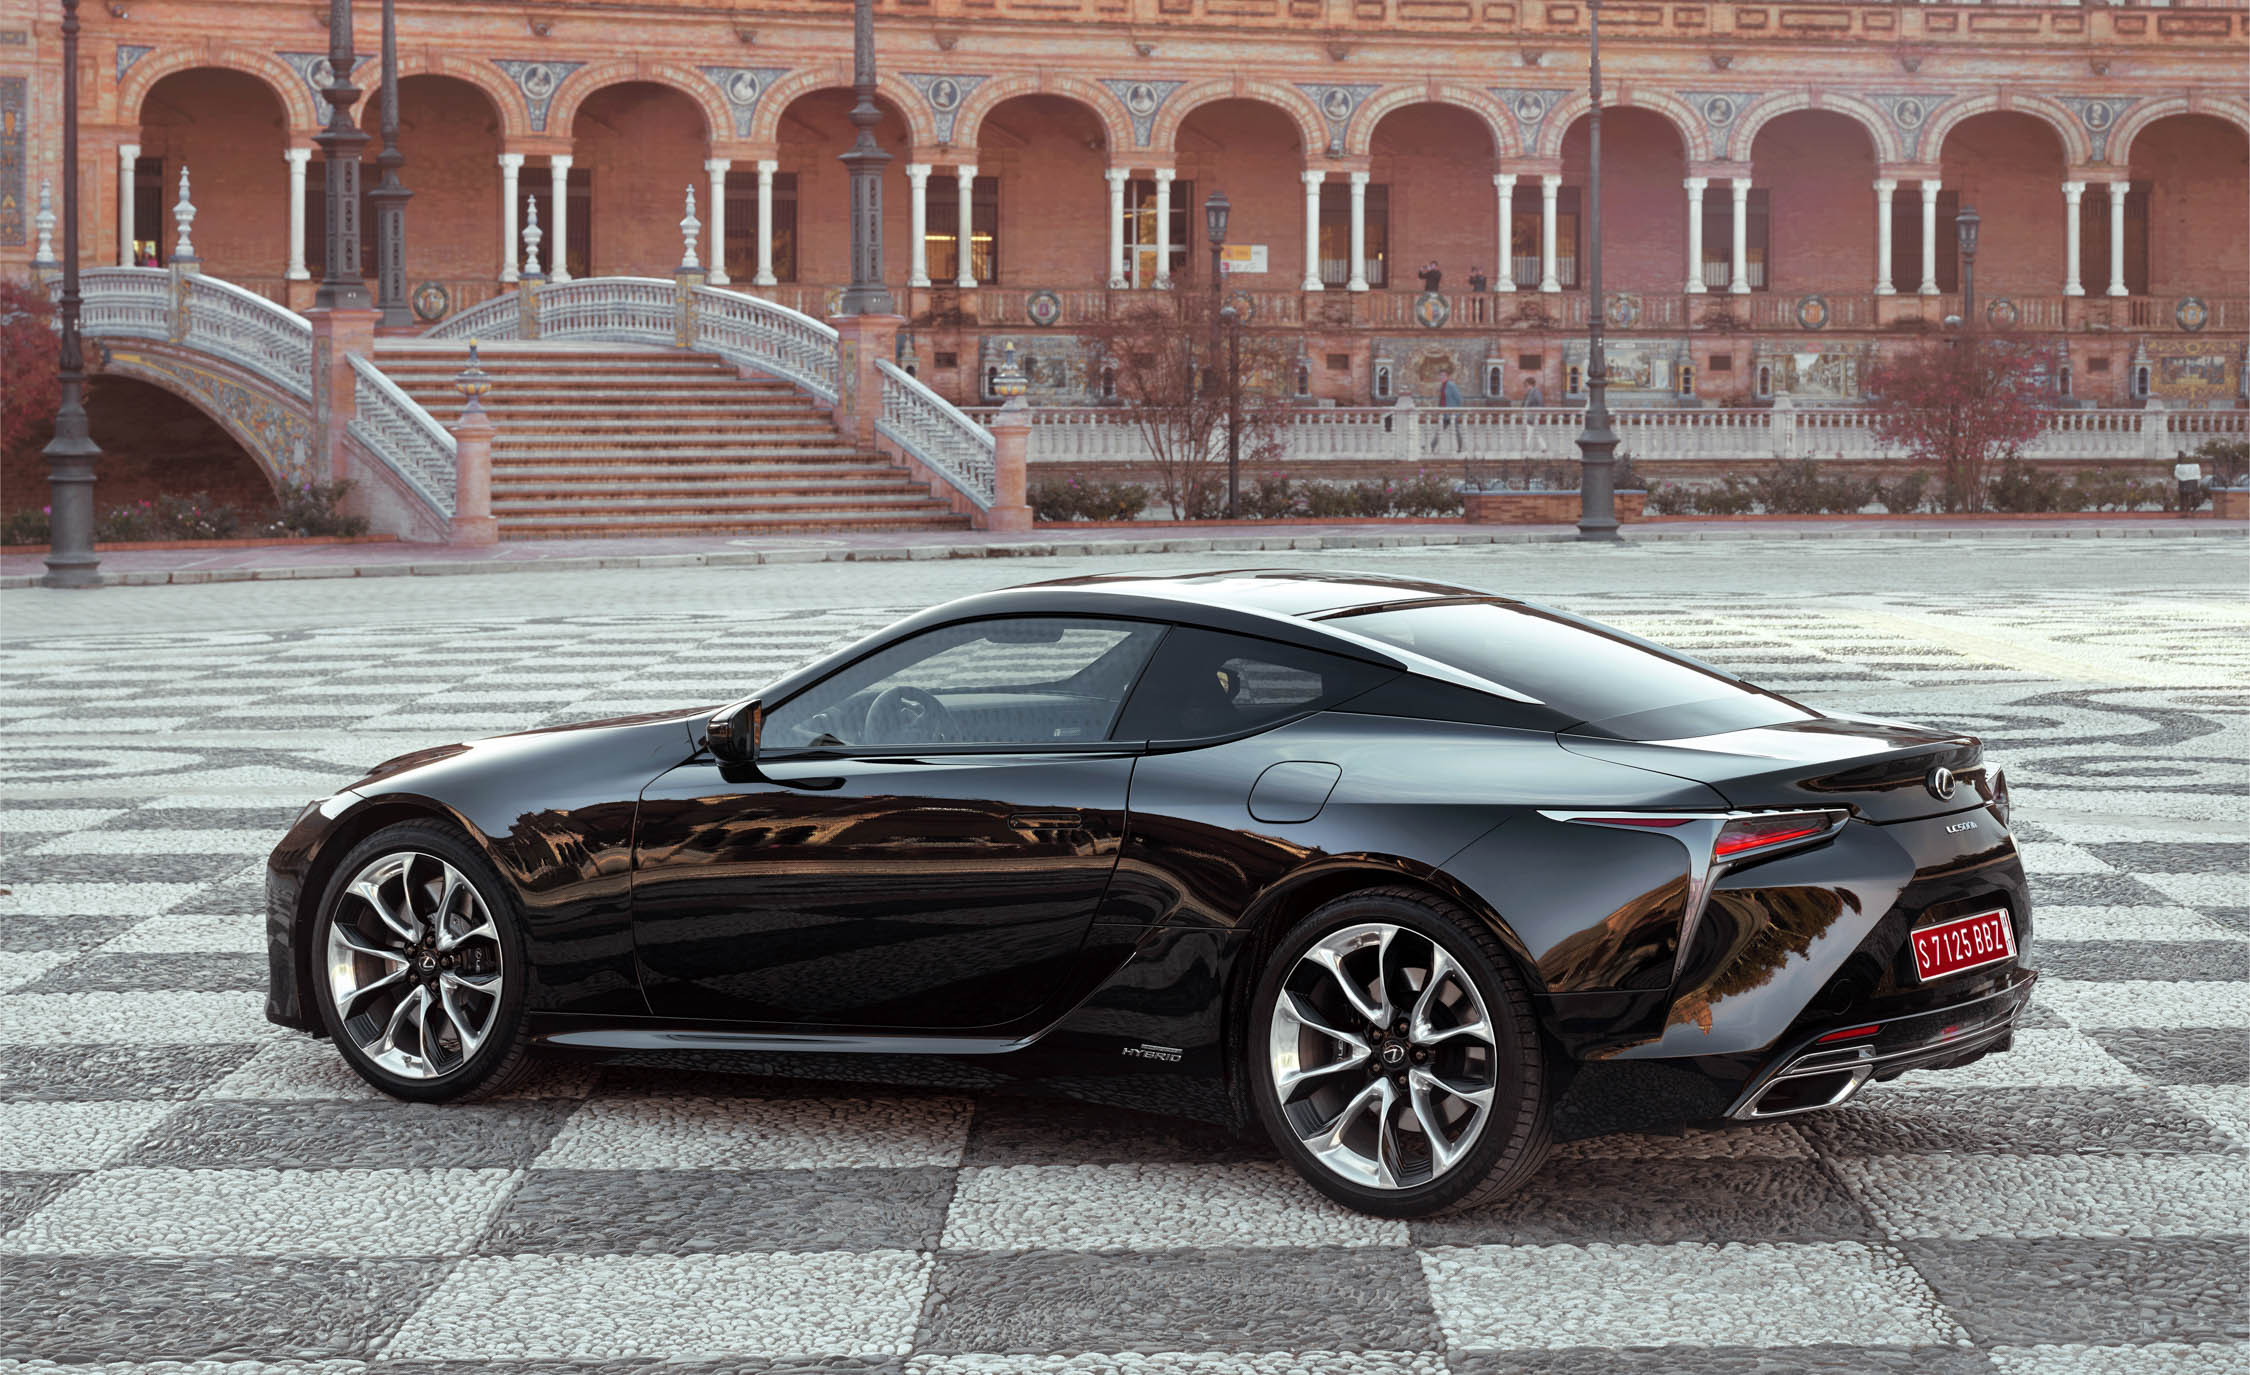 2018 Lexus Lc 500h Black Exterior Side And Rear (Photo 55 of 84)